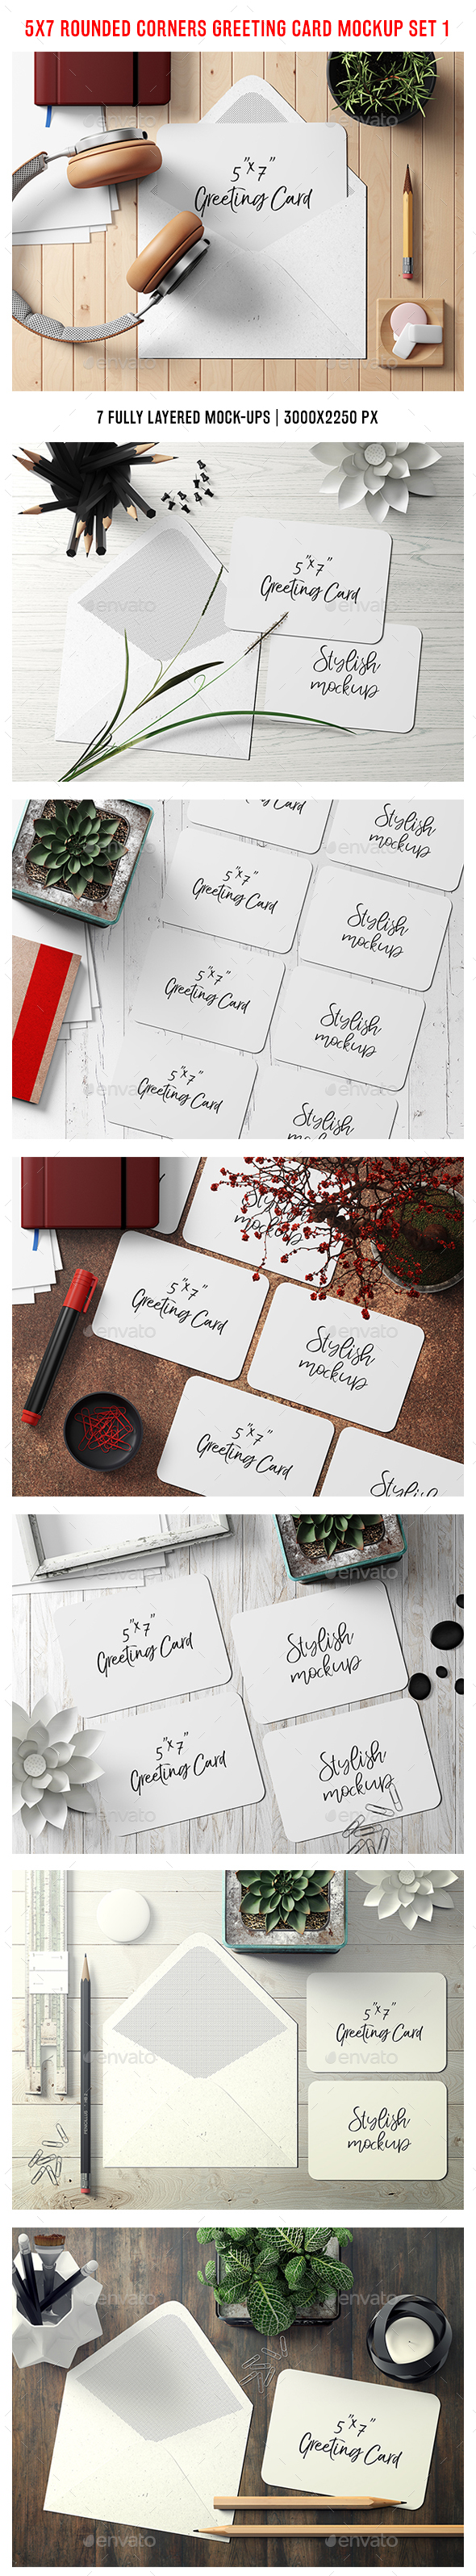 5x7 Rounded Corners Greeting Card / Postcard Mockup - Set 1 - Stationery Print